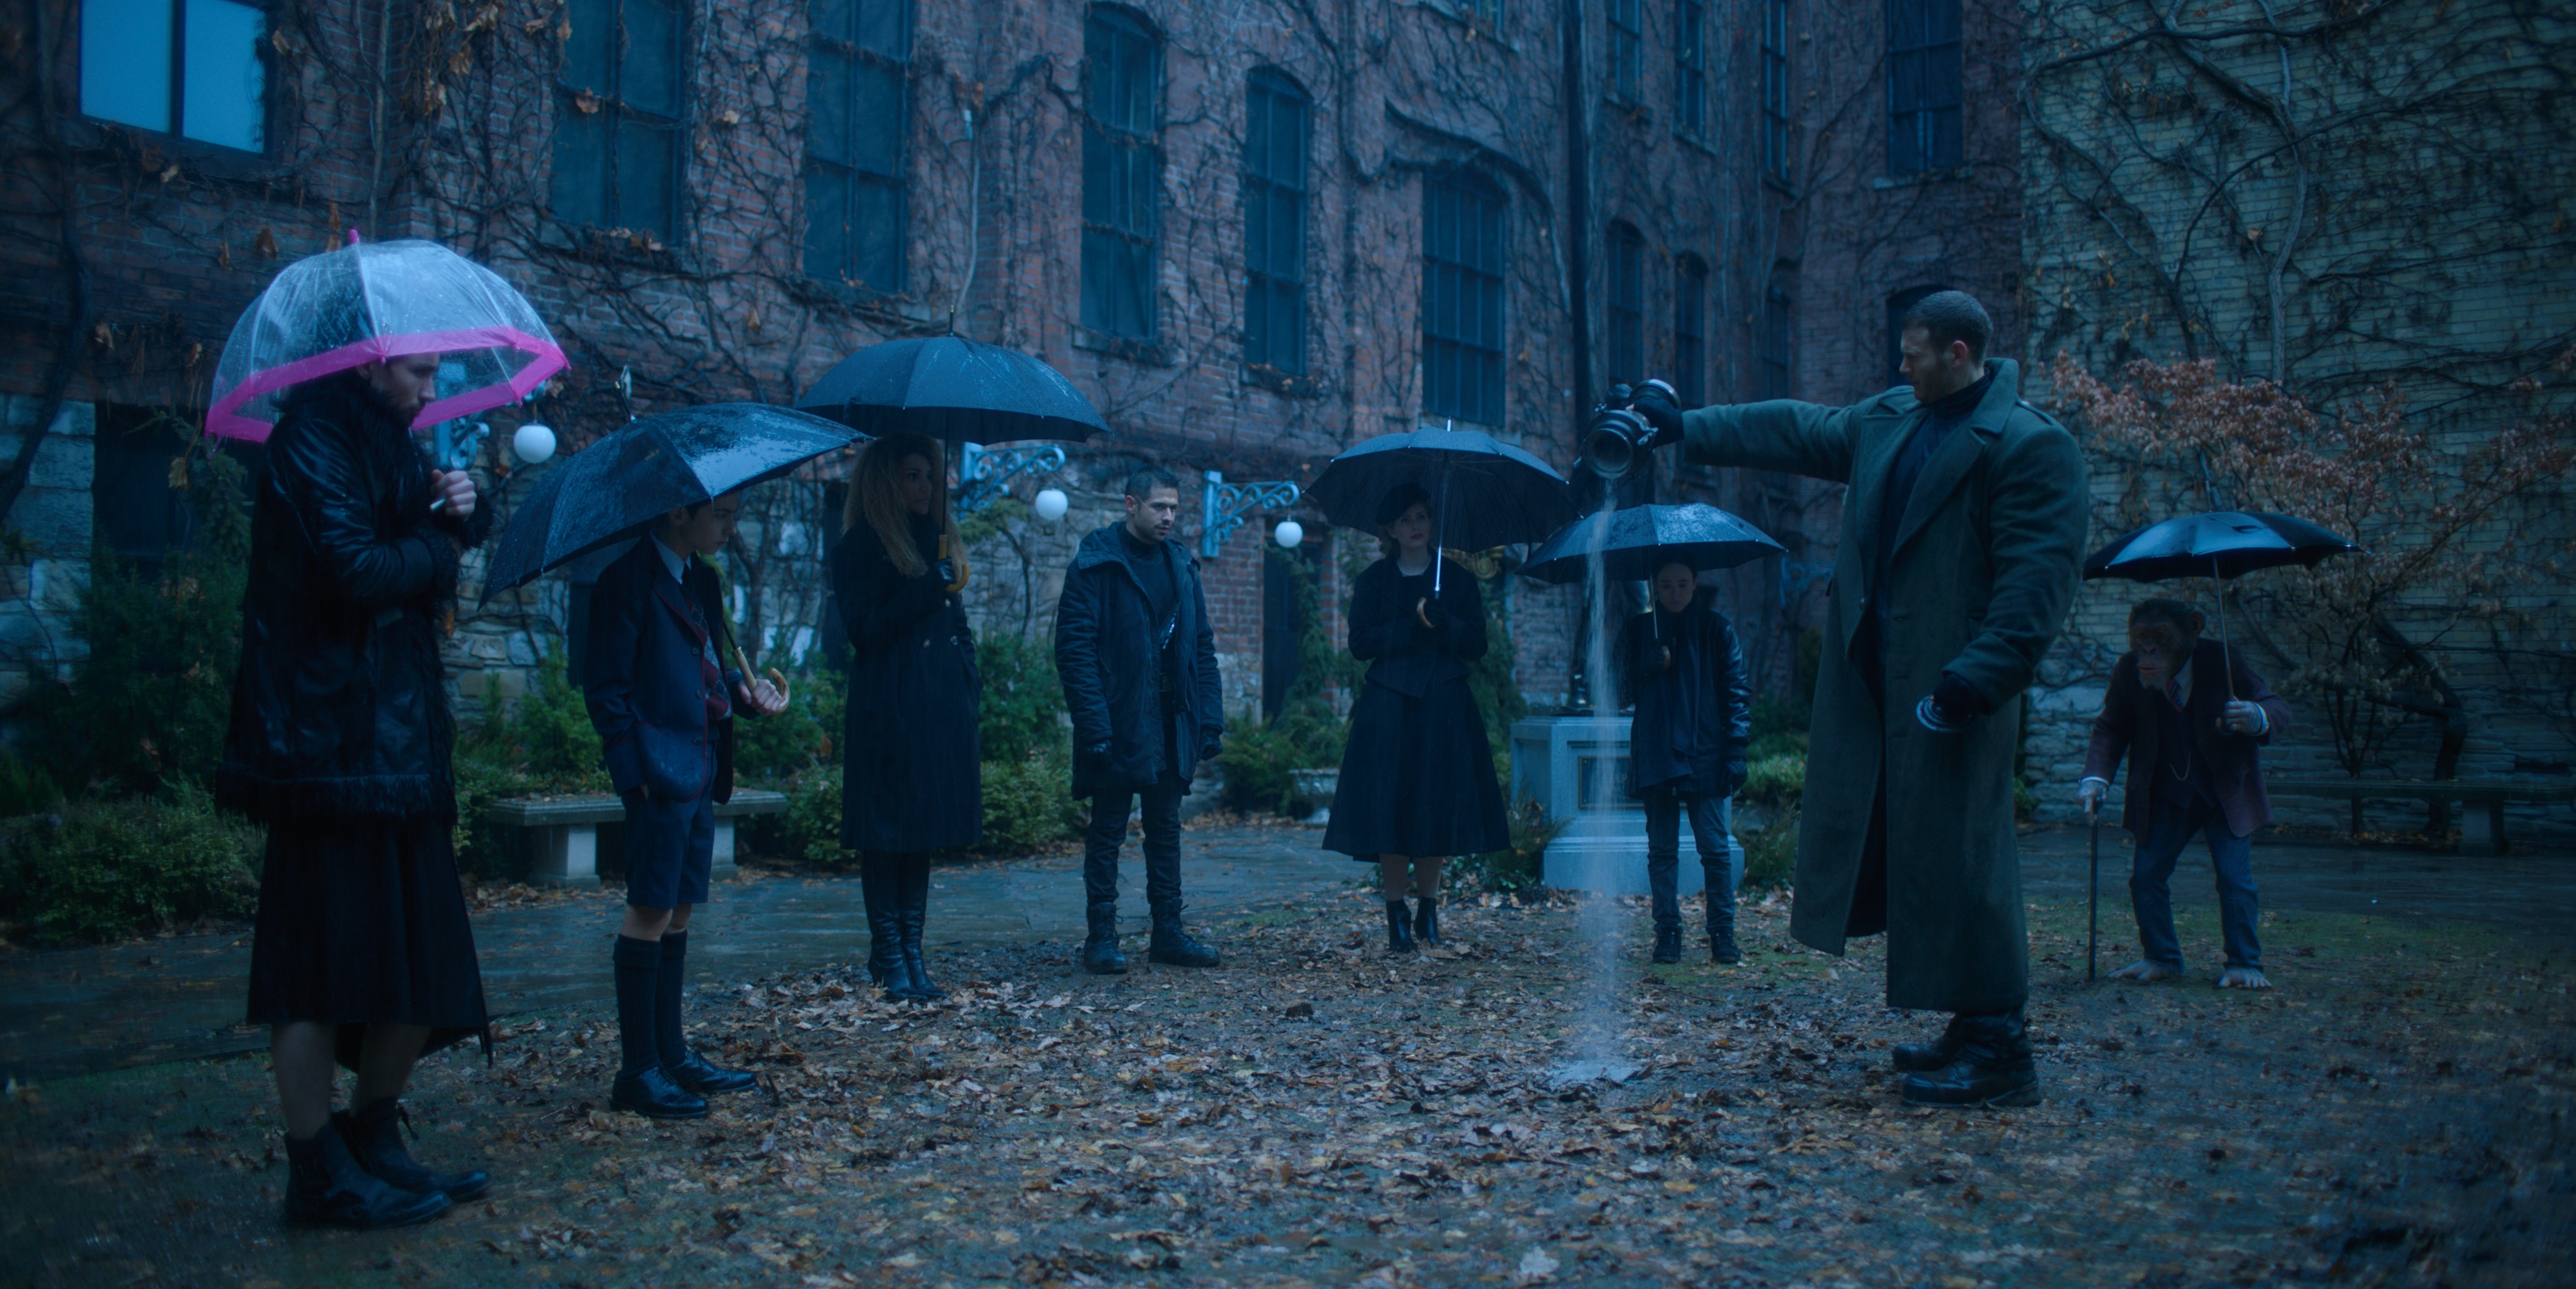 'The Umbrella Academy' Season 2 Release Date, Trailer, Plot, and More